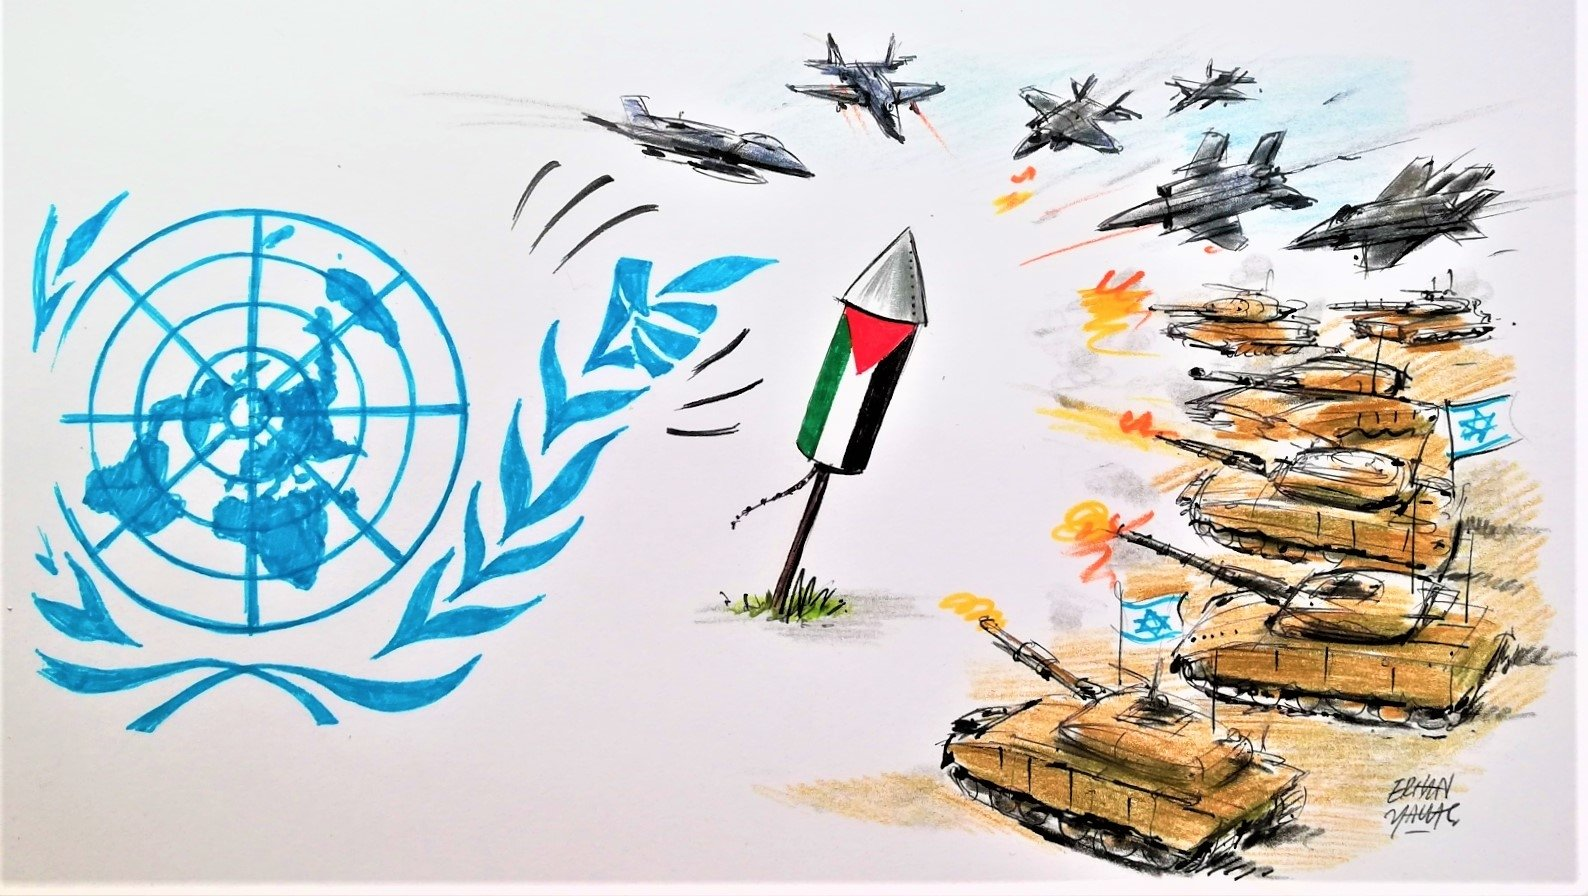 An illustration by Erhan Yalvaç criticizes Israel's asymmetric use of power against the Palestinians and the U.N.'s lack of action in the re-escalated Palestinian-Israeli conflict.